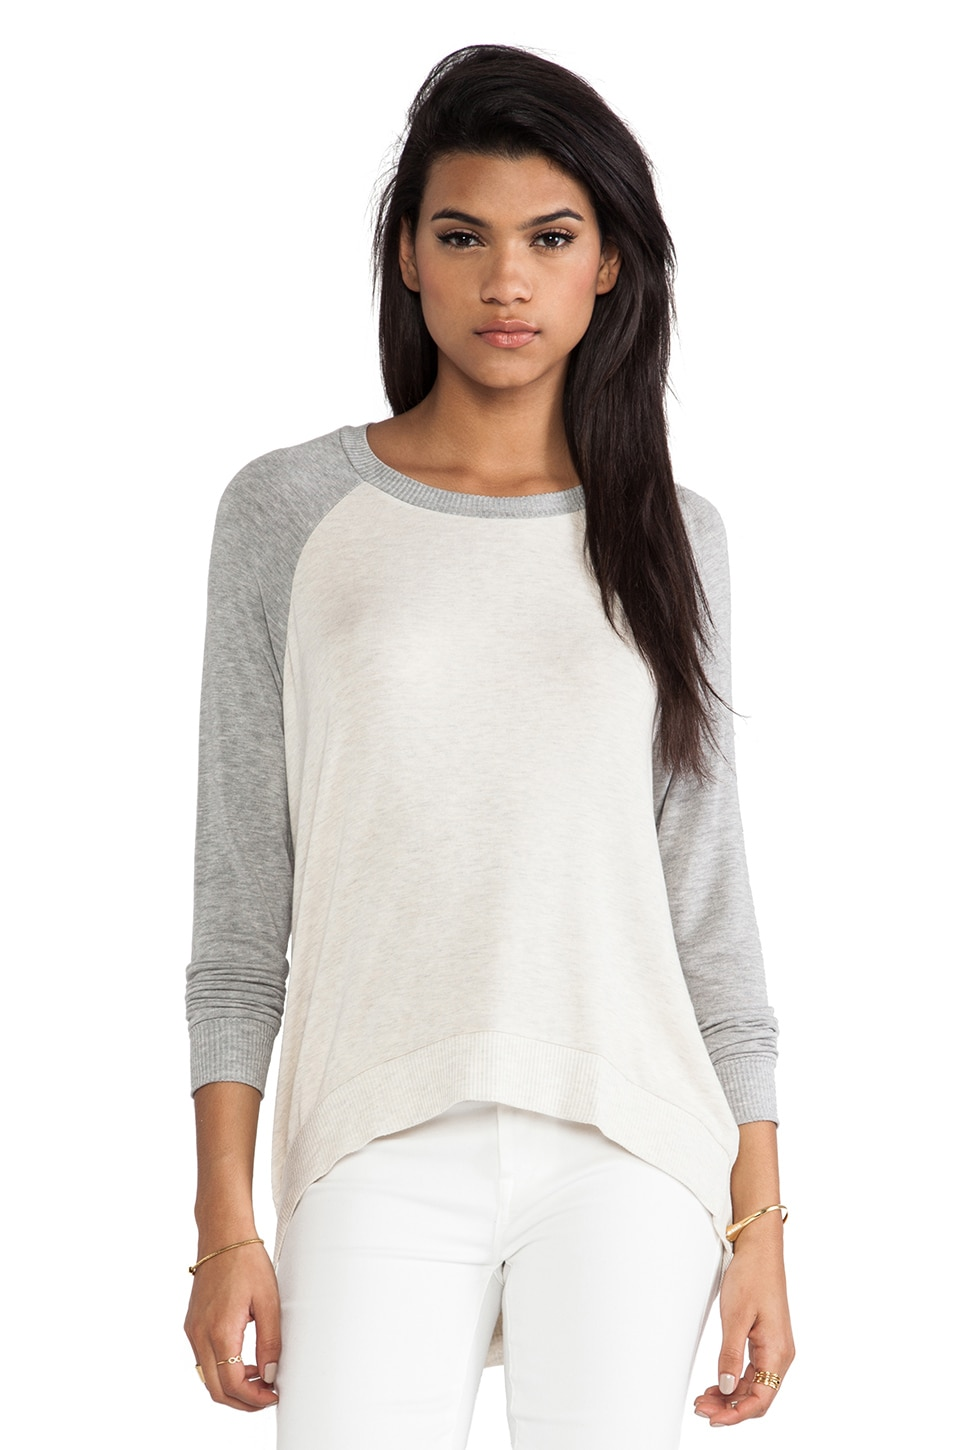 Bella Luxx High-Low Pullover Sweater in Cream Heather & Heather Grey